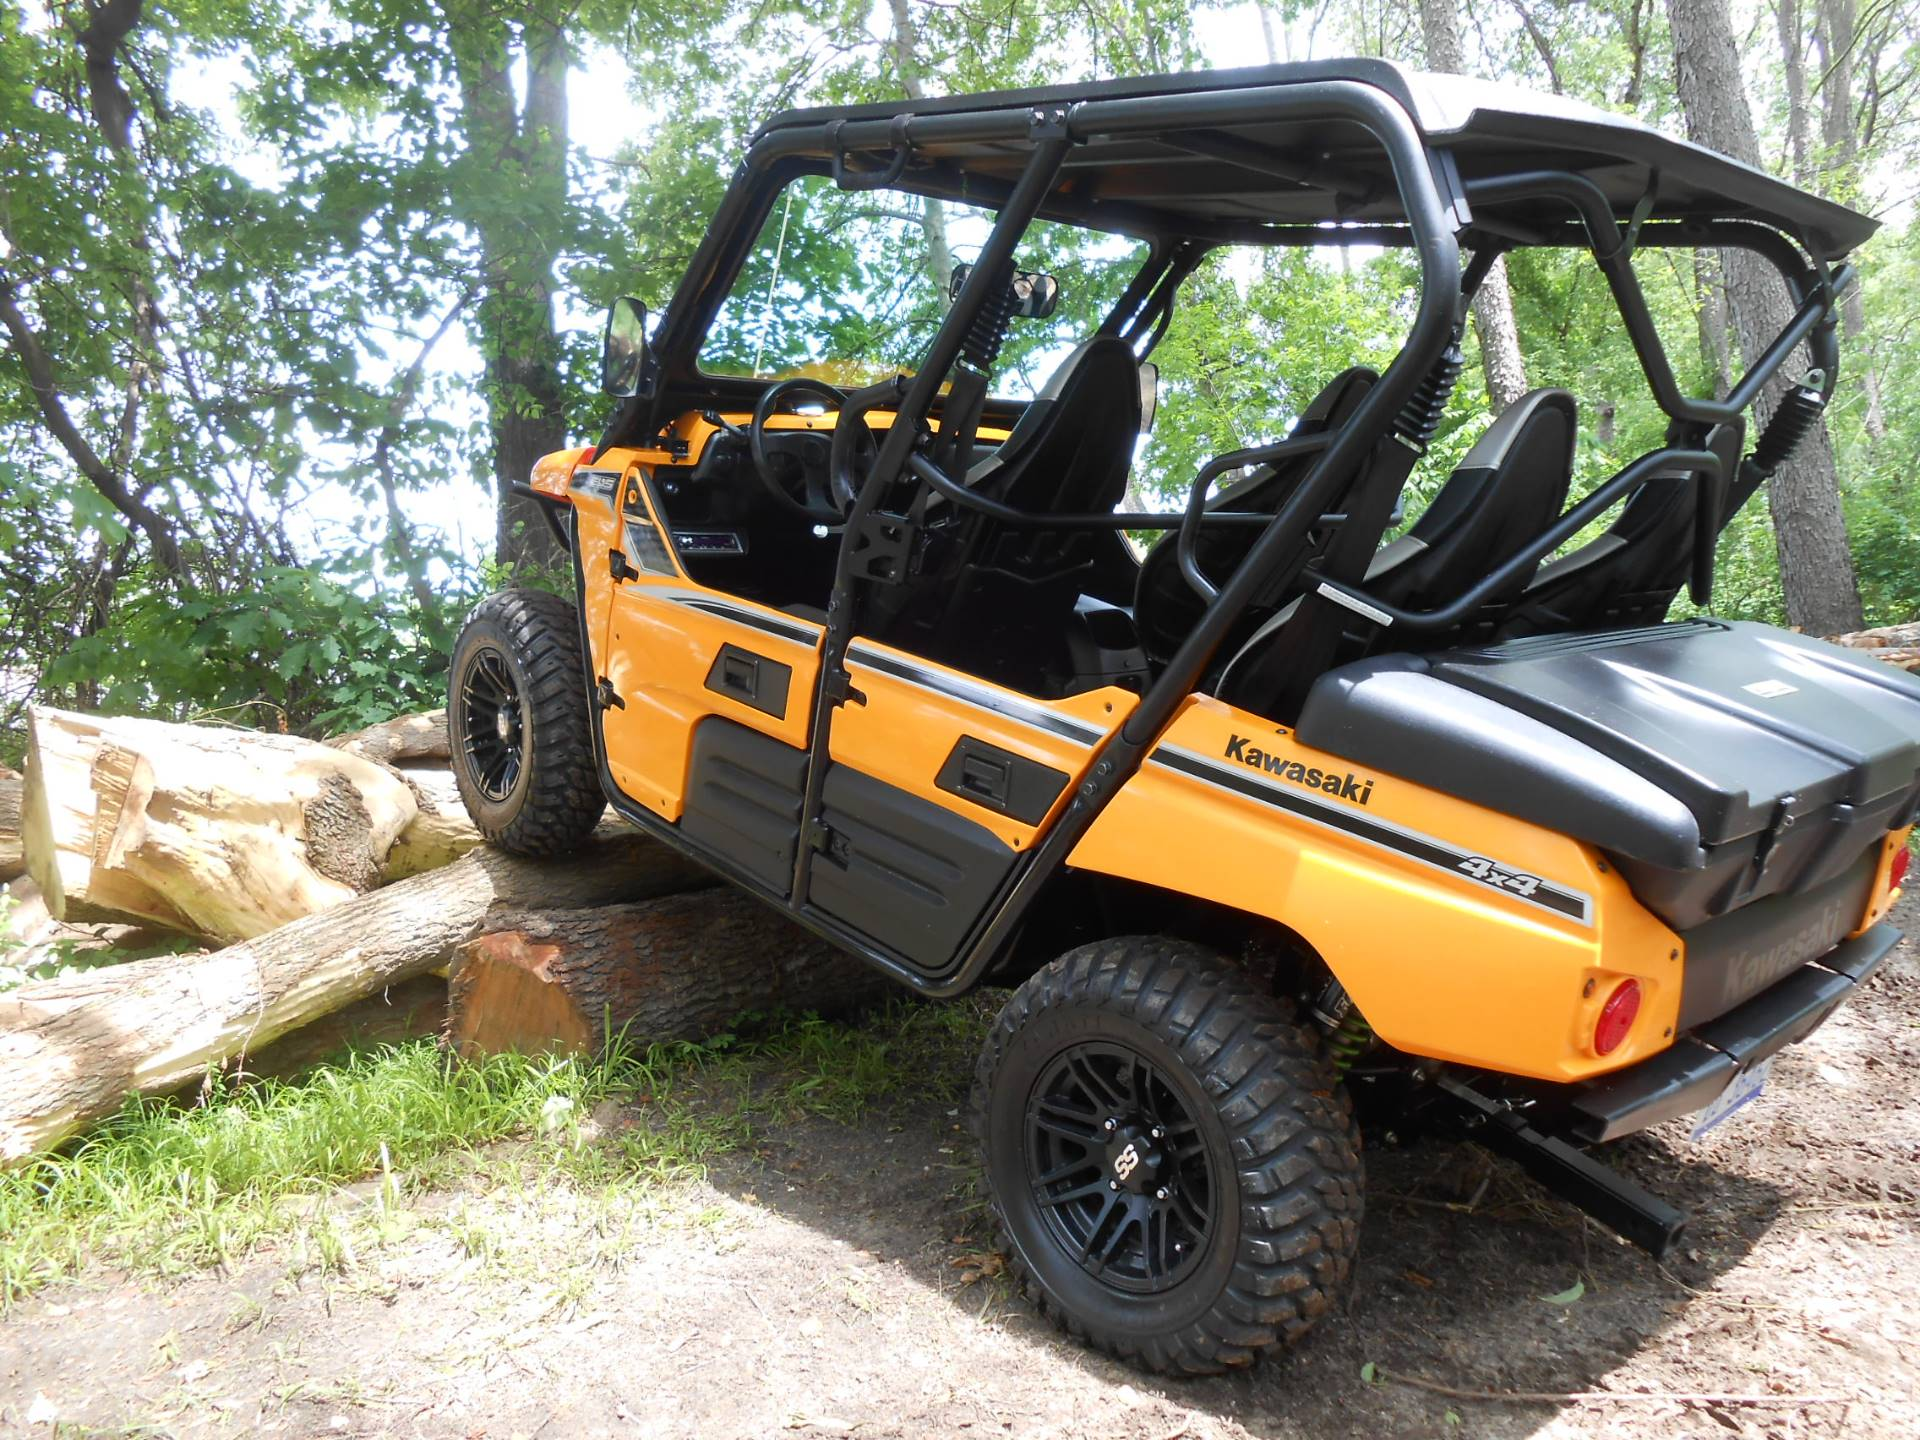 2013 Kawasaki Teryx4™ 750 4x4 EPS LE in Howell, Michigan - Photo 69